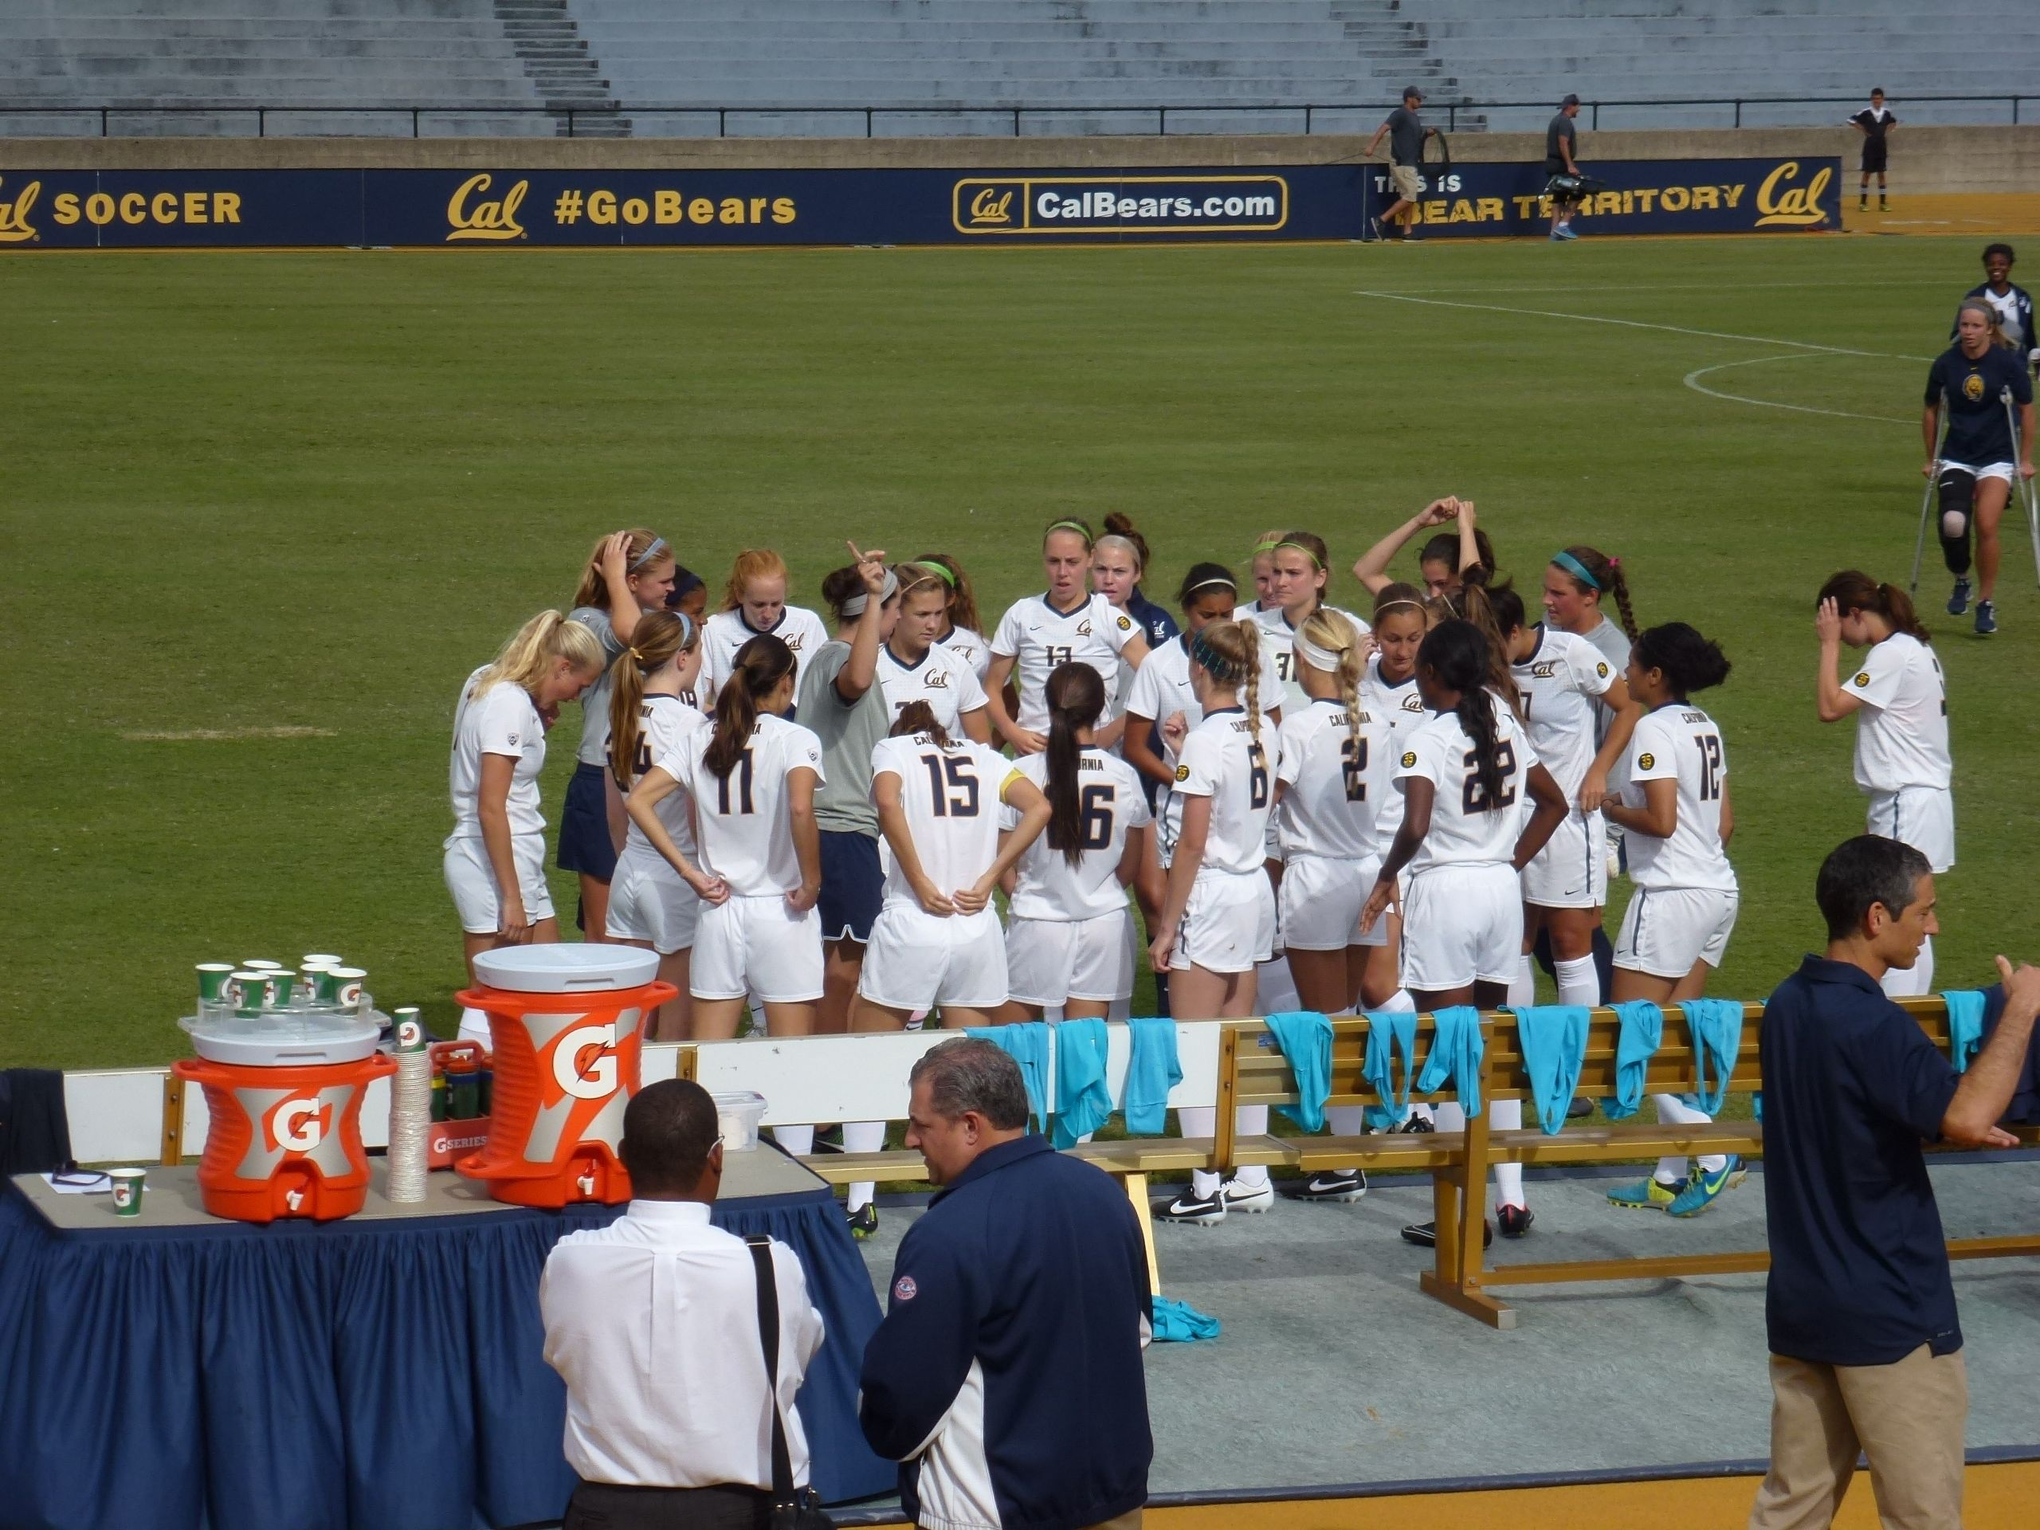 my cal women s soccer match experience a photo essay p1170431 medium